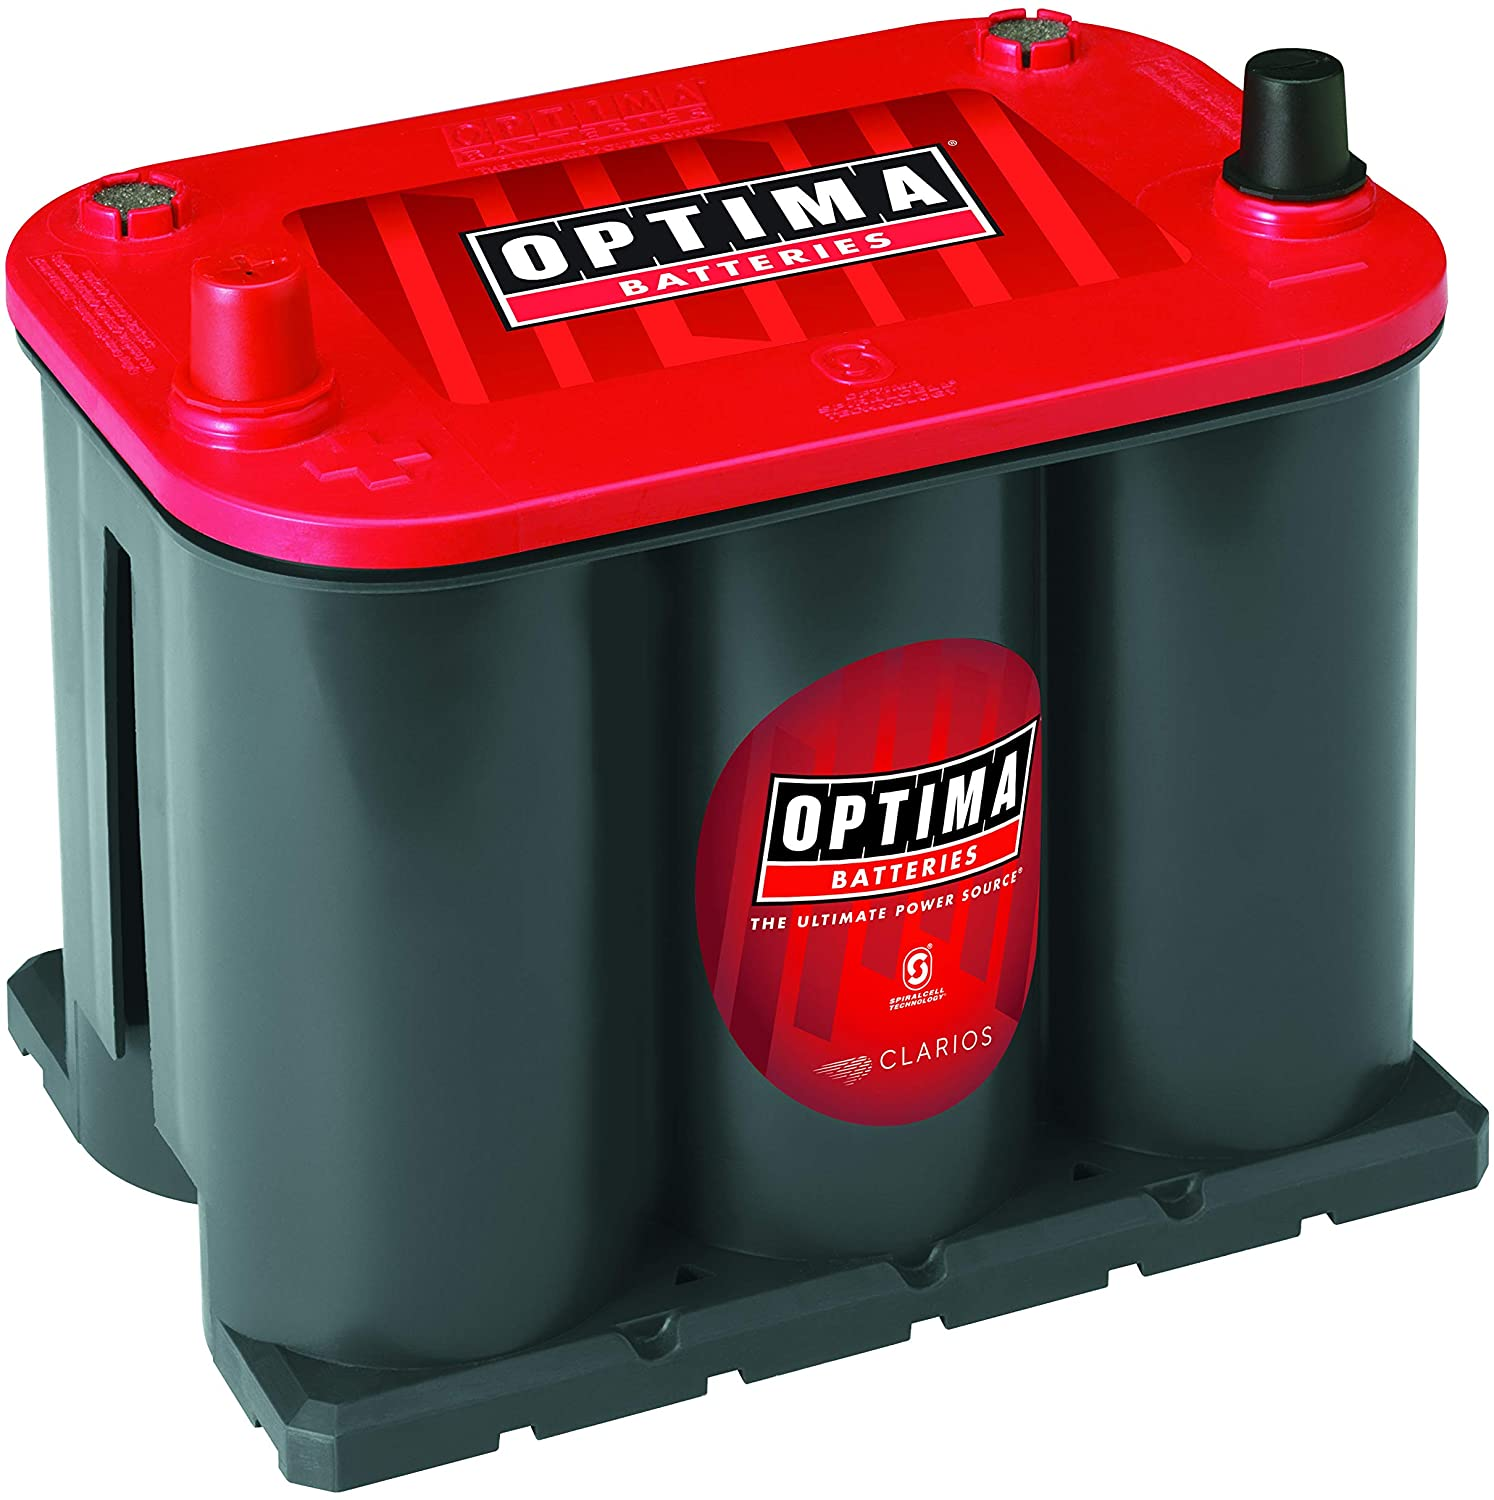 Optima 8025-160 25 RedTop Starting Car Battery